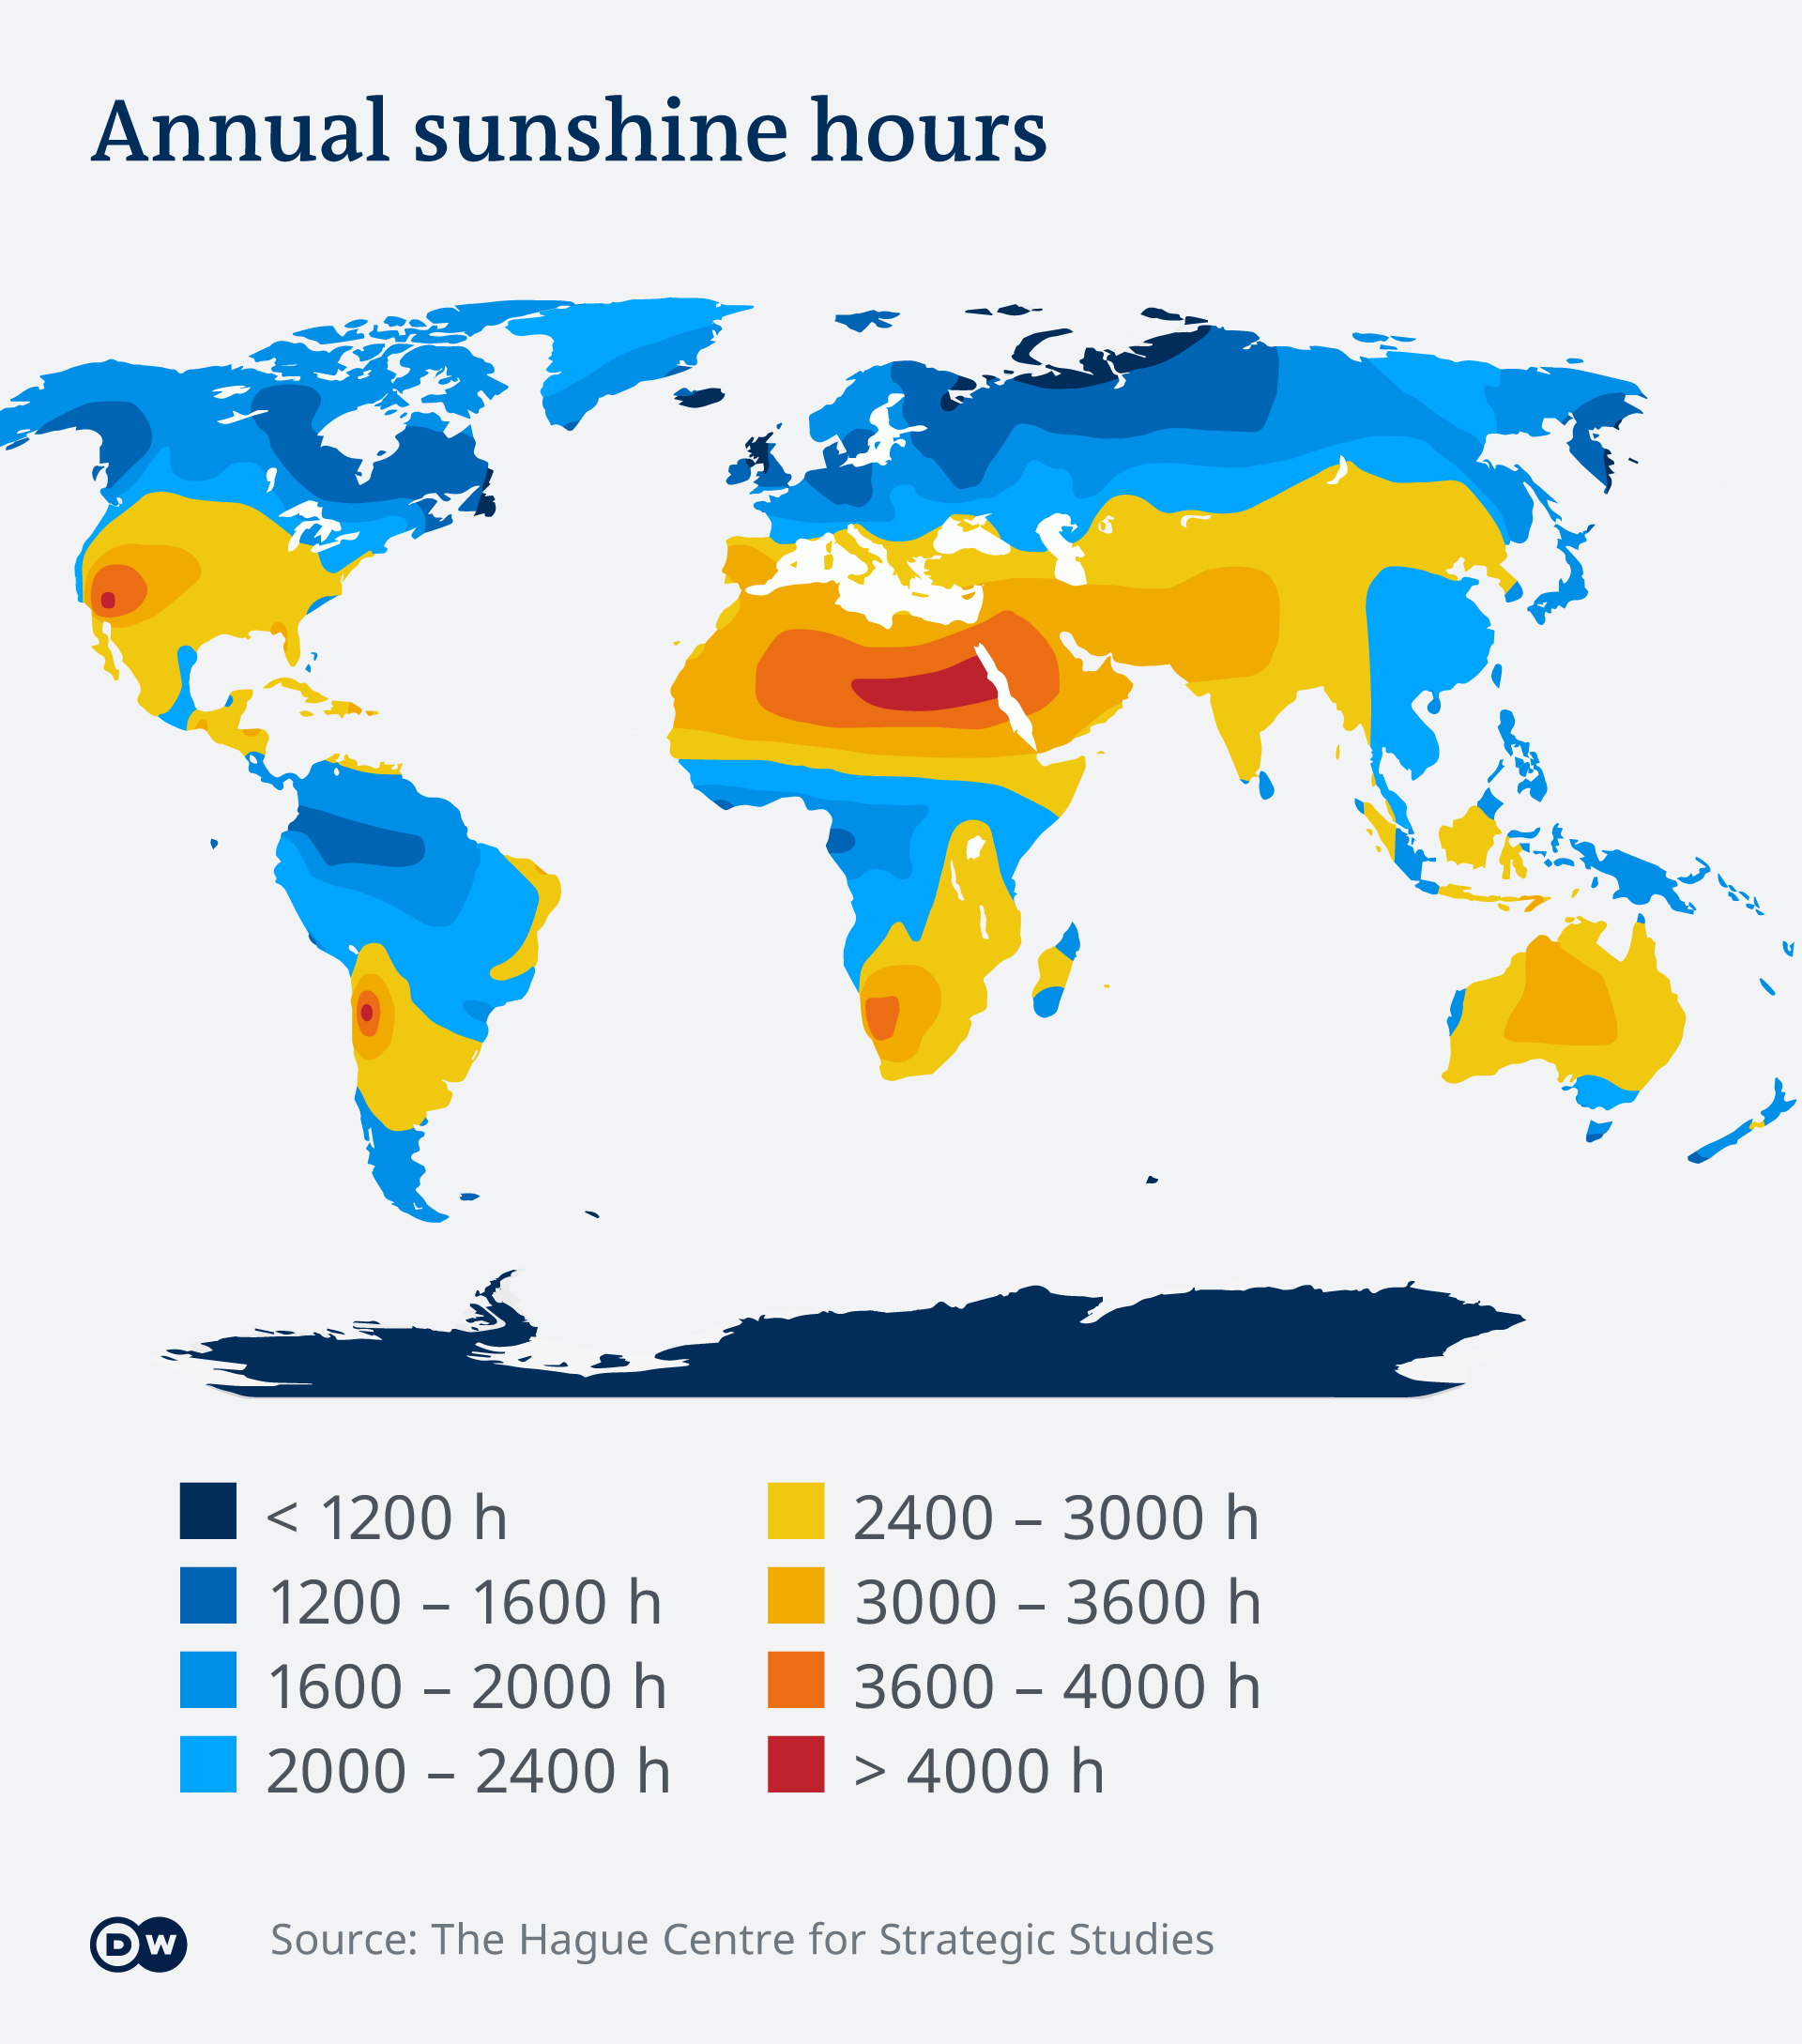 Image of world map showing hours of sunlight